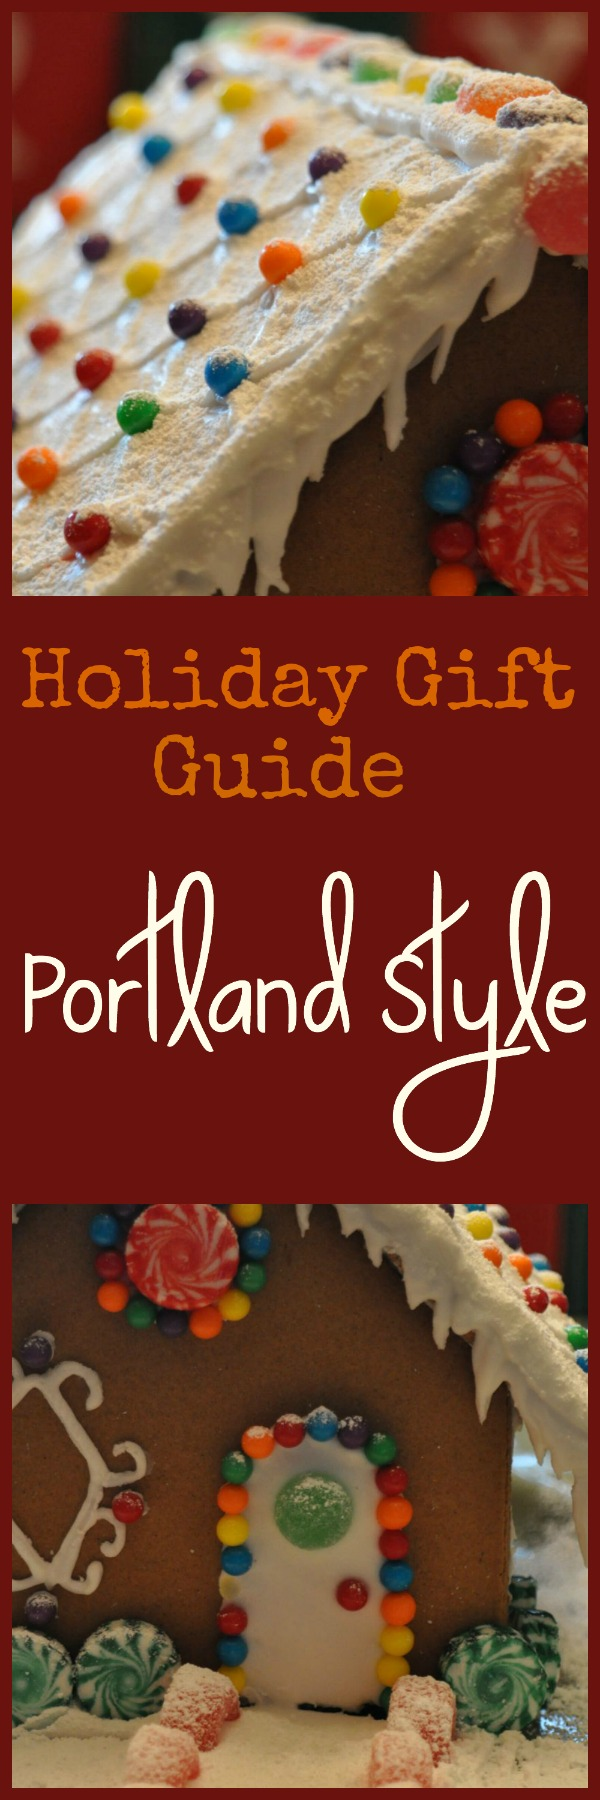 Holiday Gift Guide for Portland, Oregon